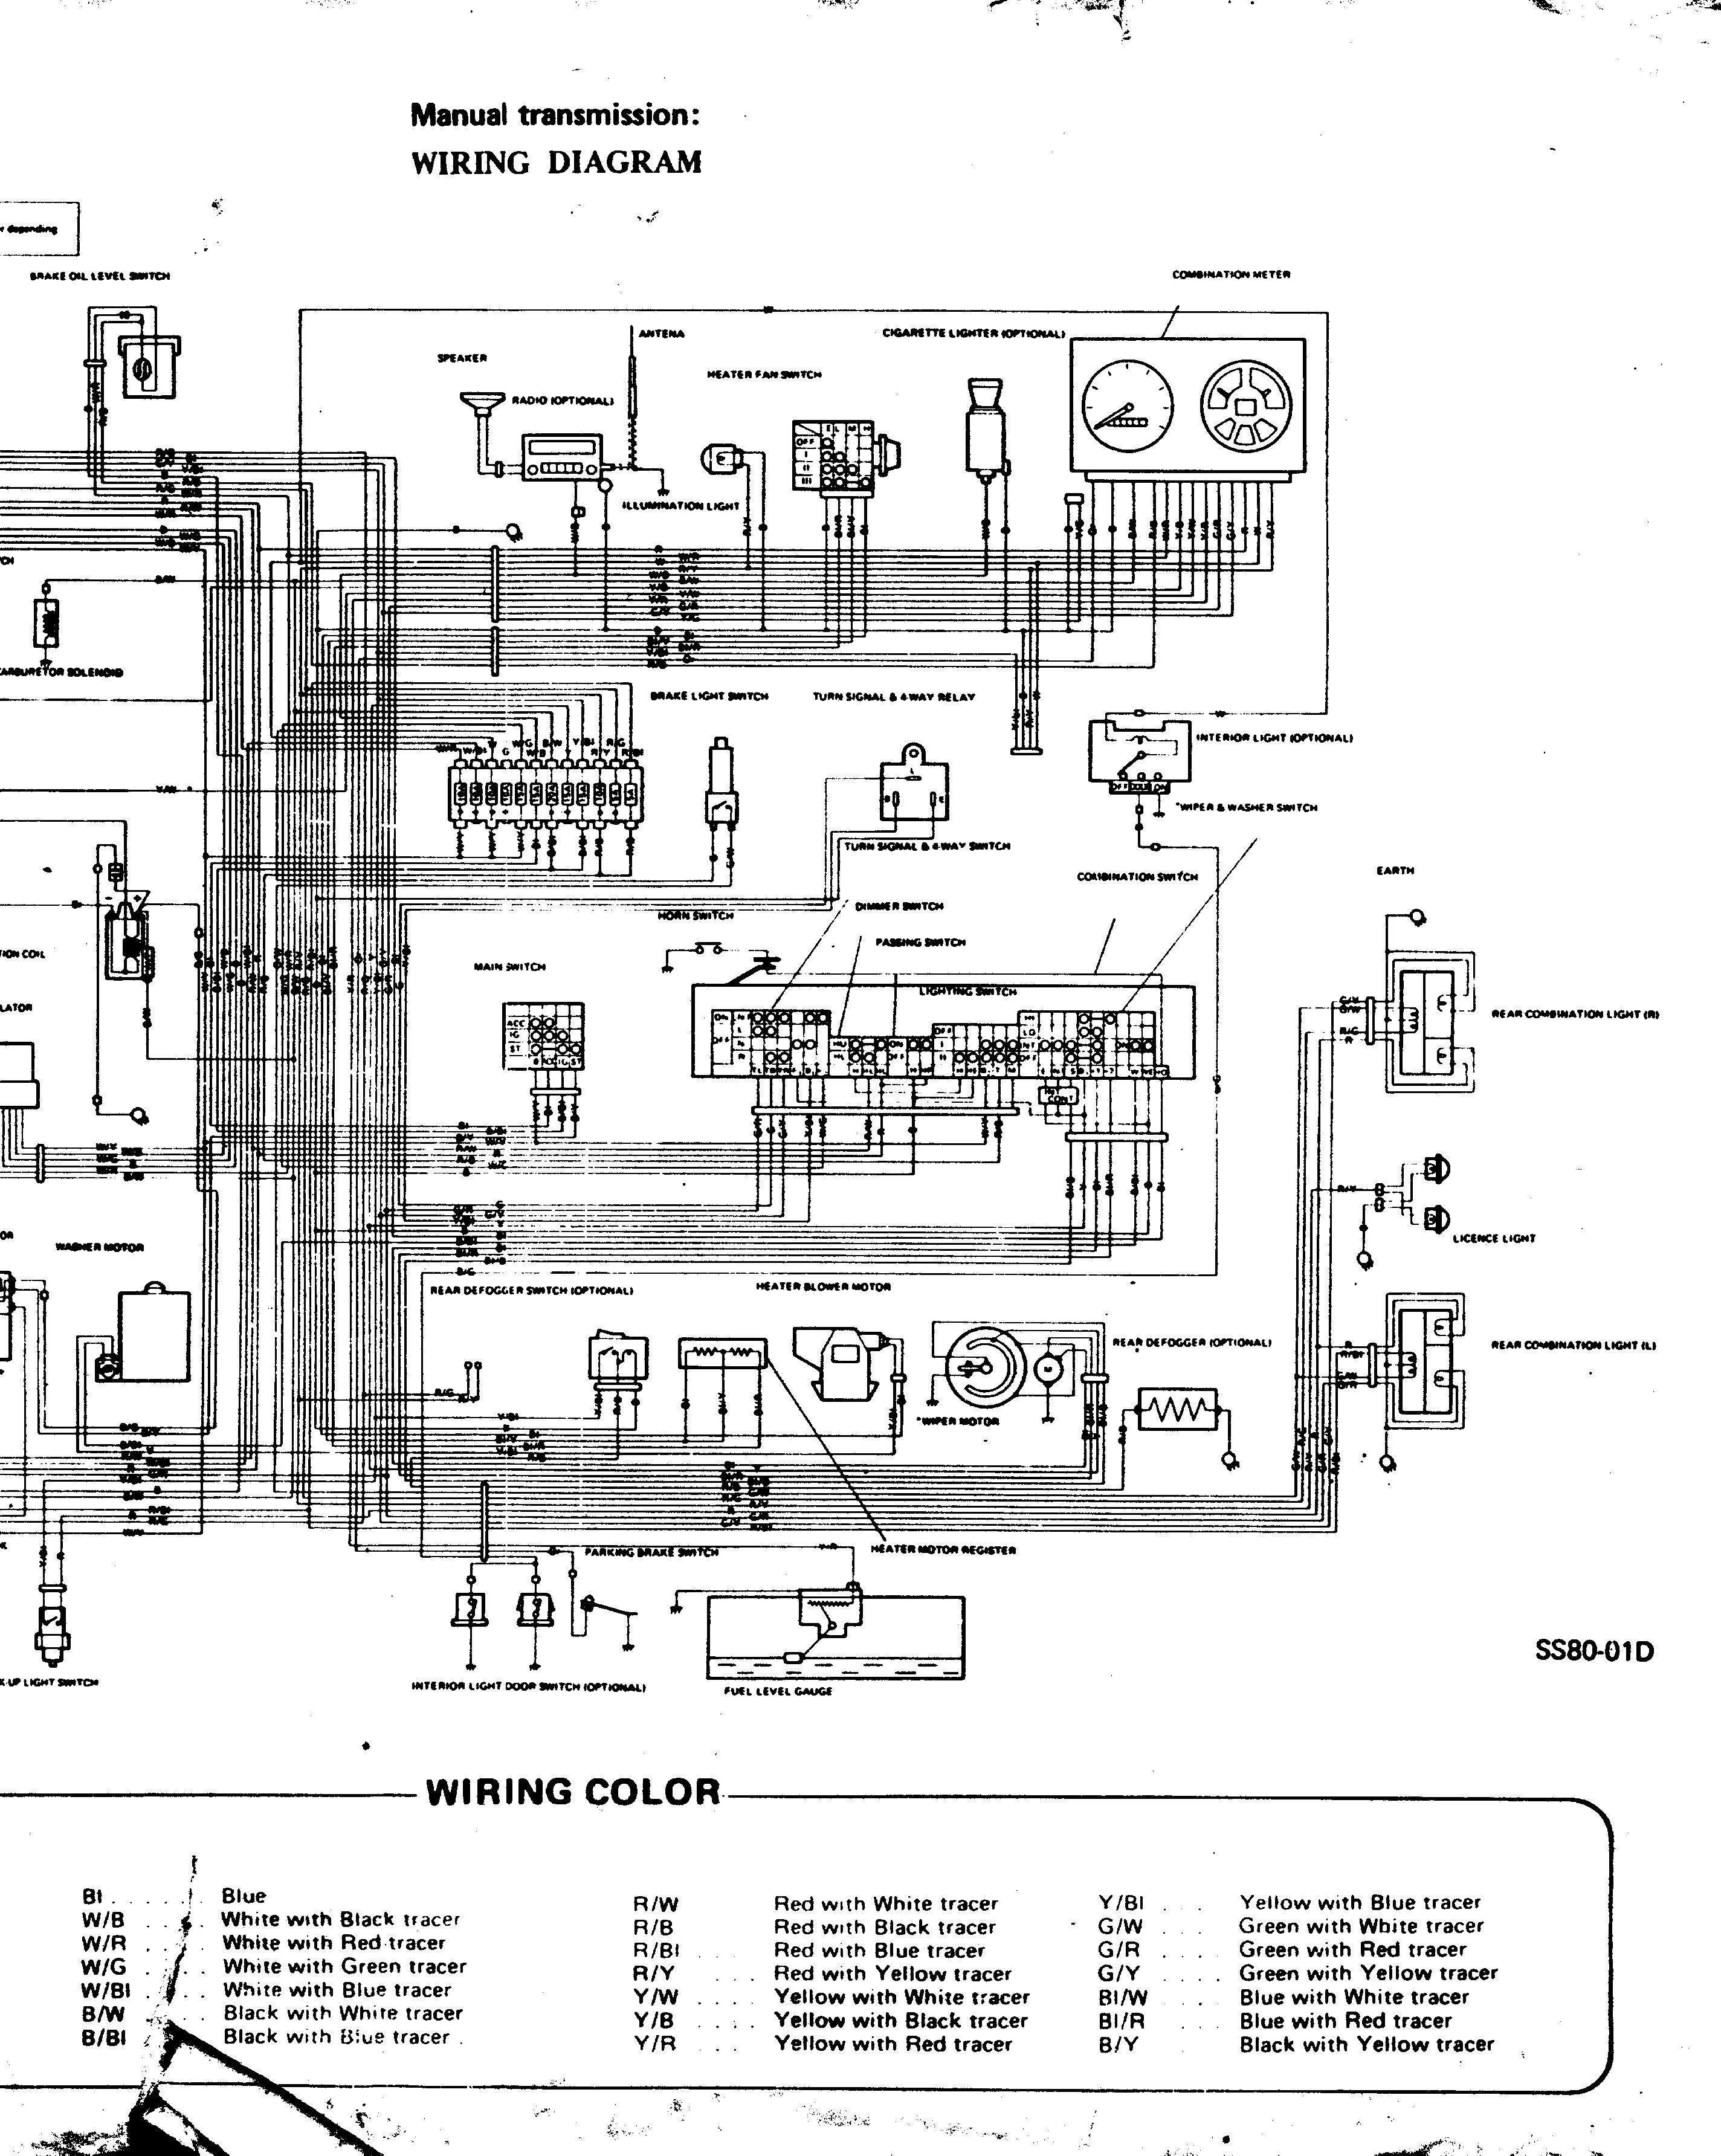 Maruti 800 Car Wiring Diagram Pdf Great Installation Of Golf Cart Electrical Libraries Rh W9 Mo Stein De 1999 Club 48v Electric Diagrams Auto Charger